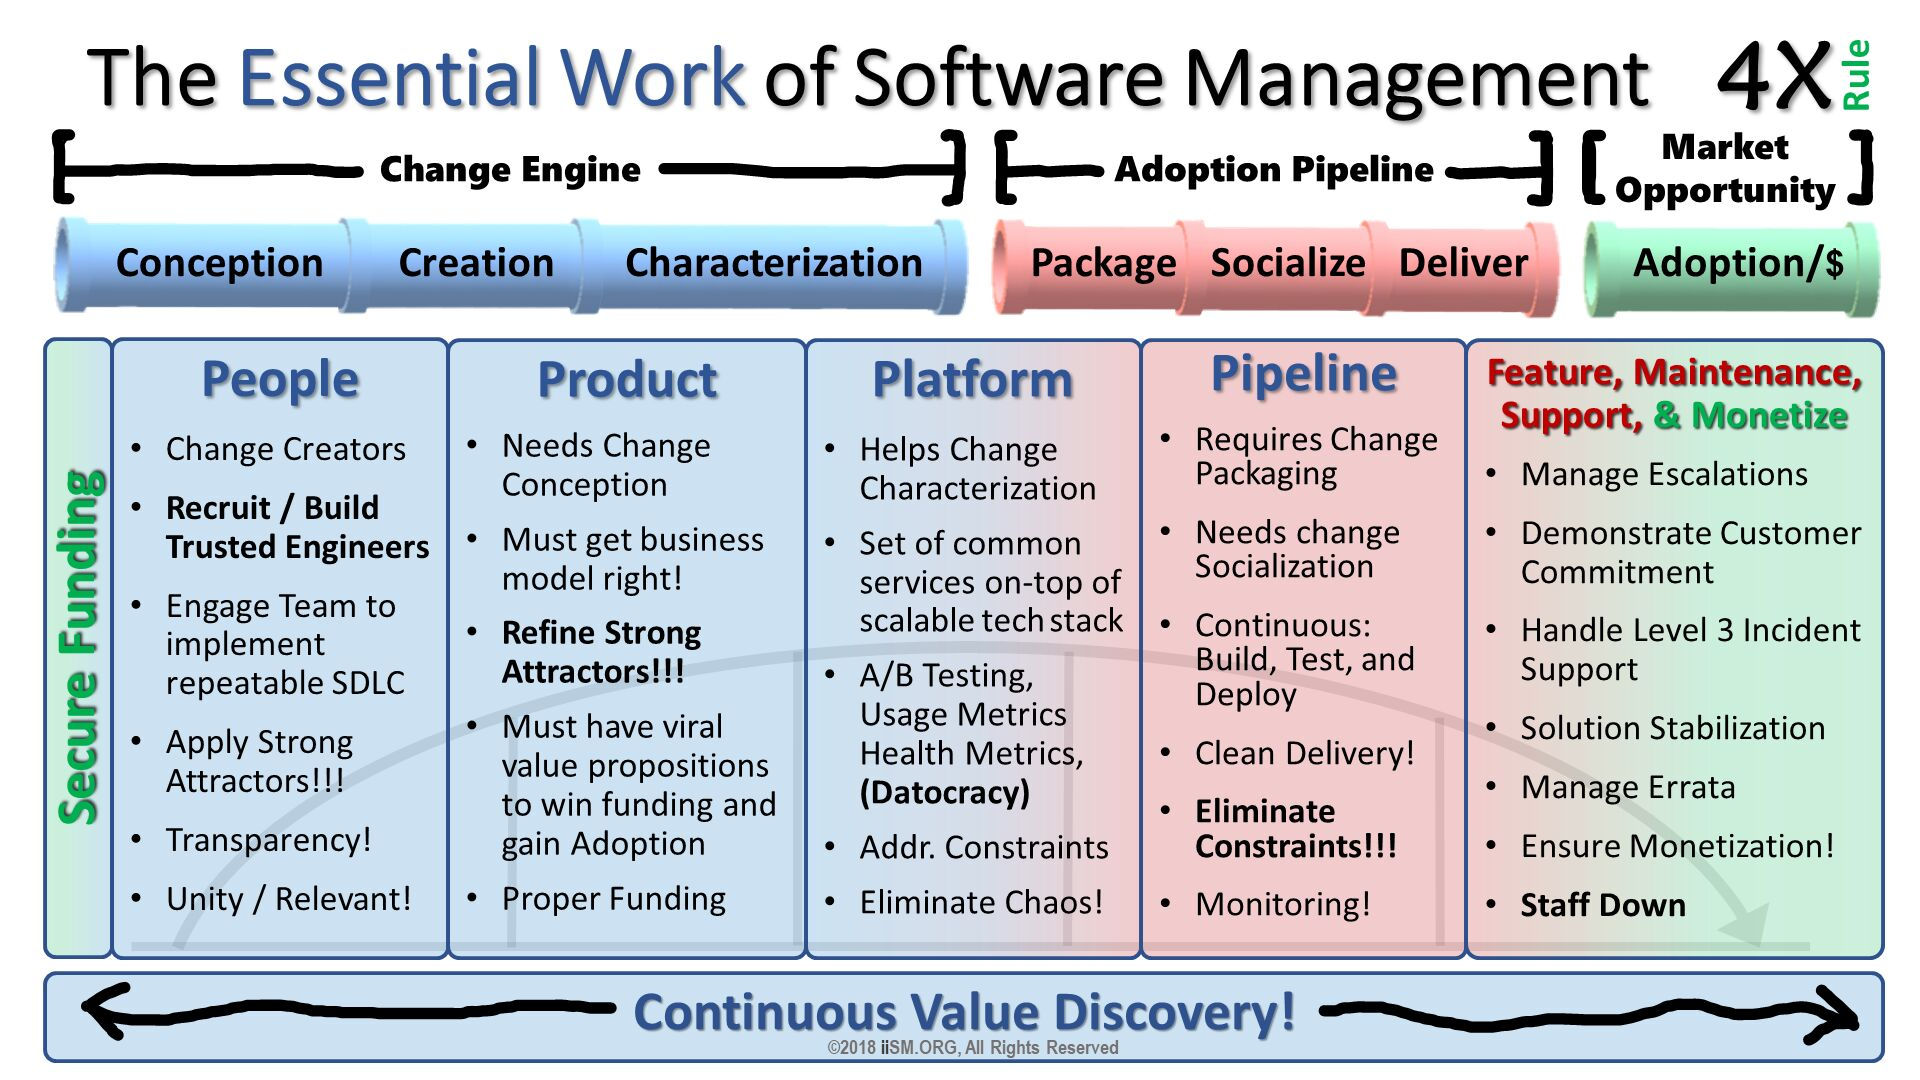 The Essential Work of Software Management. People Change Creators Recruit / Build Trusted Engineers Engage Team to implement repeatable SDLC  Apply Strong Attractors!!! Transparency! Unity / Relevant!  . Product Needs Change Conception Must get business model right! Refine Strong Attractors!!! Must have viral value propositions to win funding and gain Adoption Proper Funding . Platform Helps Change Characterization Set of common services on-top of scalable tech stack  A/B Testing, Usage Metrics Health Metrics,(Datocracy) Addr. Constraints Eliminate Chaos!  . Pipeline Requires Change Packaging  Needs change Socialization Continuous: Build, Test, and Deploy Clean Delivery! Eliminate Constraints!!! Monitoring! . Feature, Maintenance, Support, & Monetize Manage Escalations Demonstrate Customer Commitment Handle Level 3 Incident Support Solution Stabilization Manage Errata Ensure Monetization! Staff Down . Secure Funding. ©2018 iiSM.ORG, All Rights Reserved.